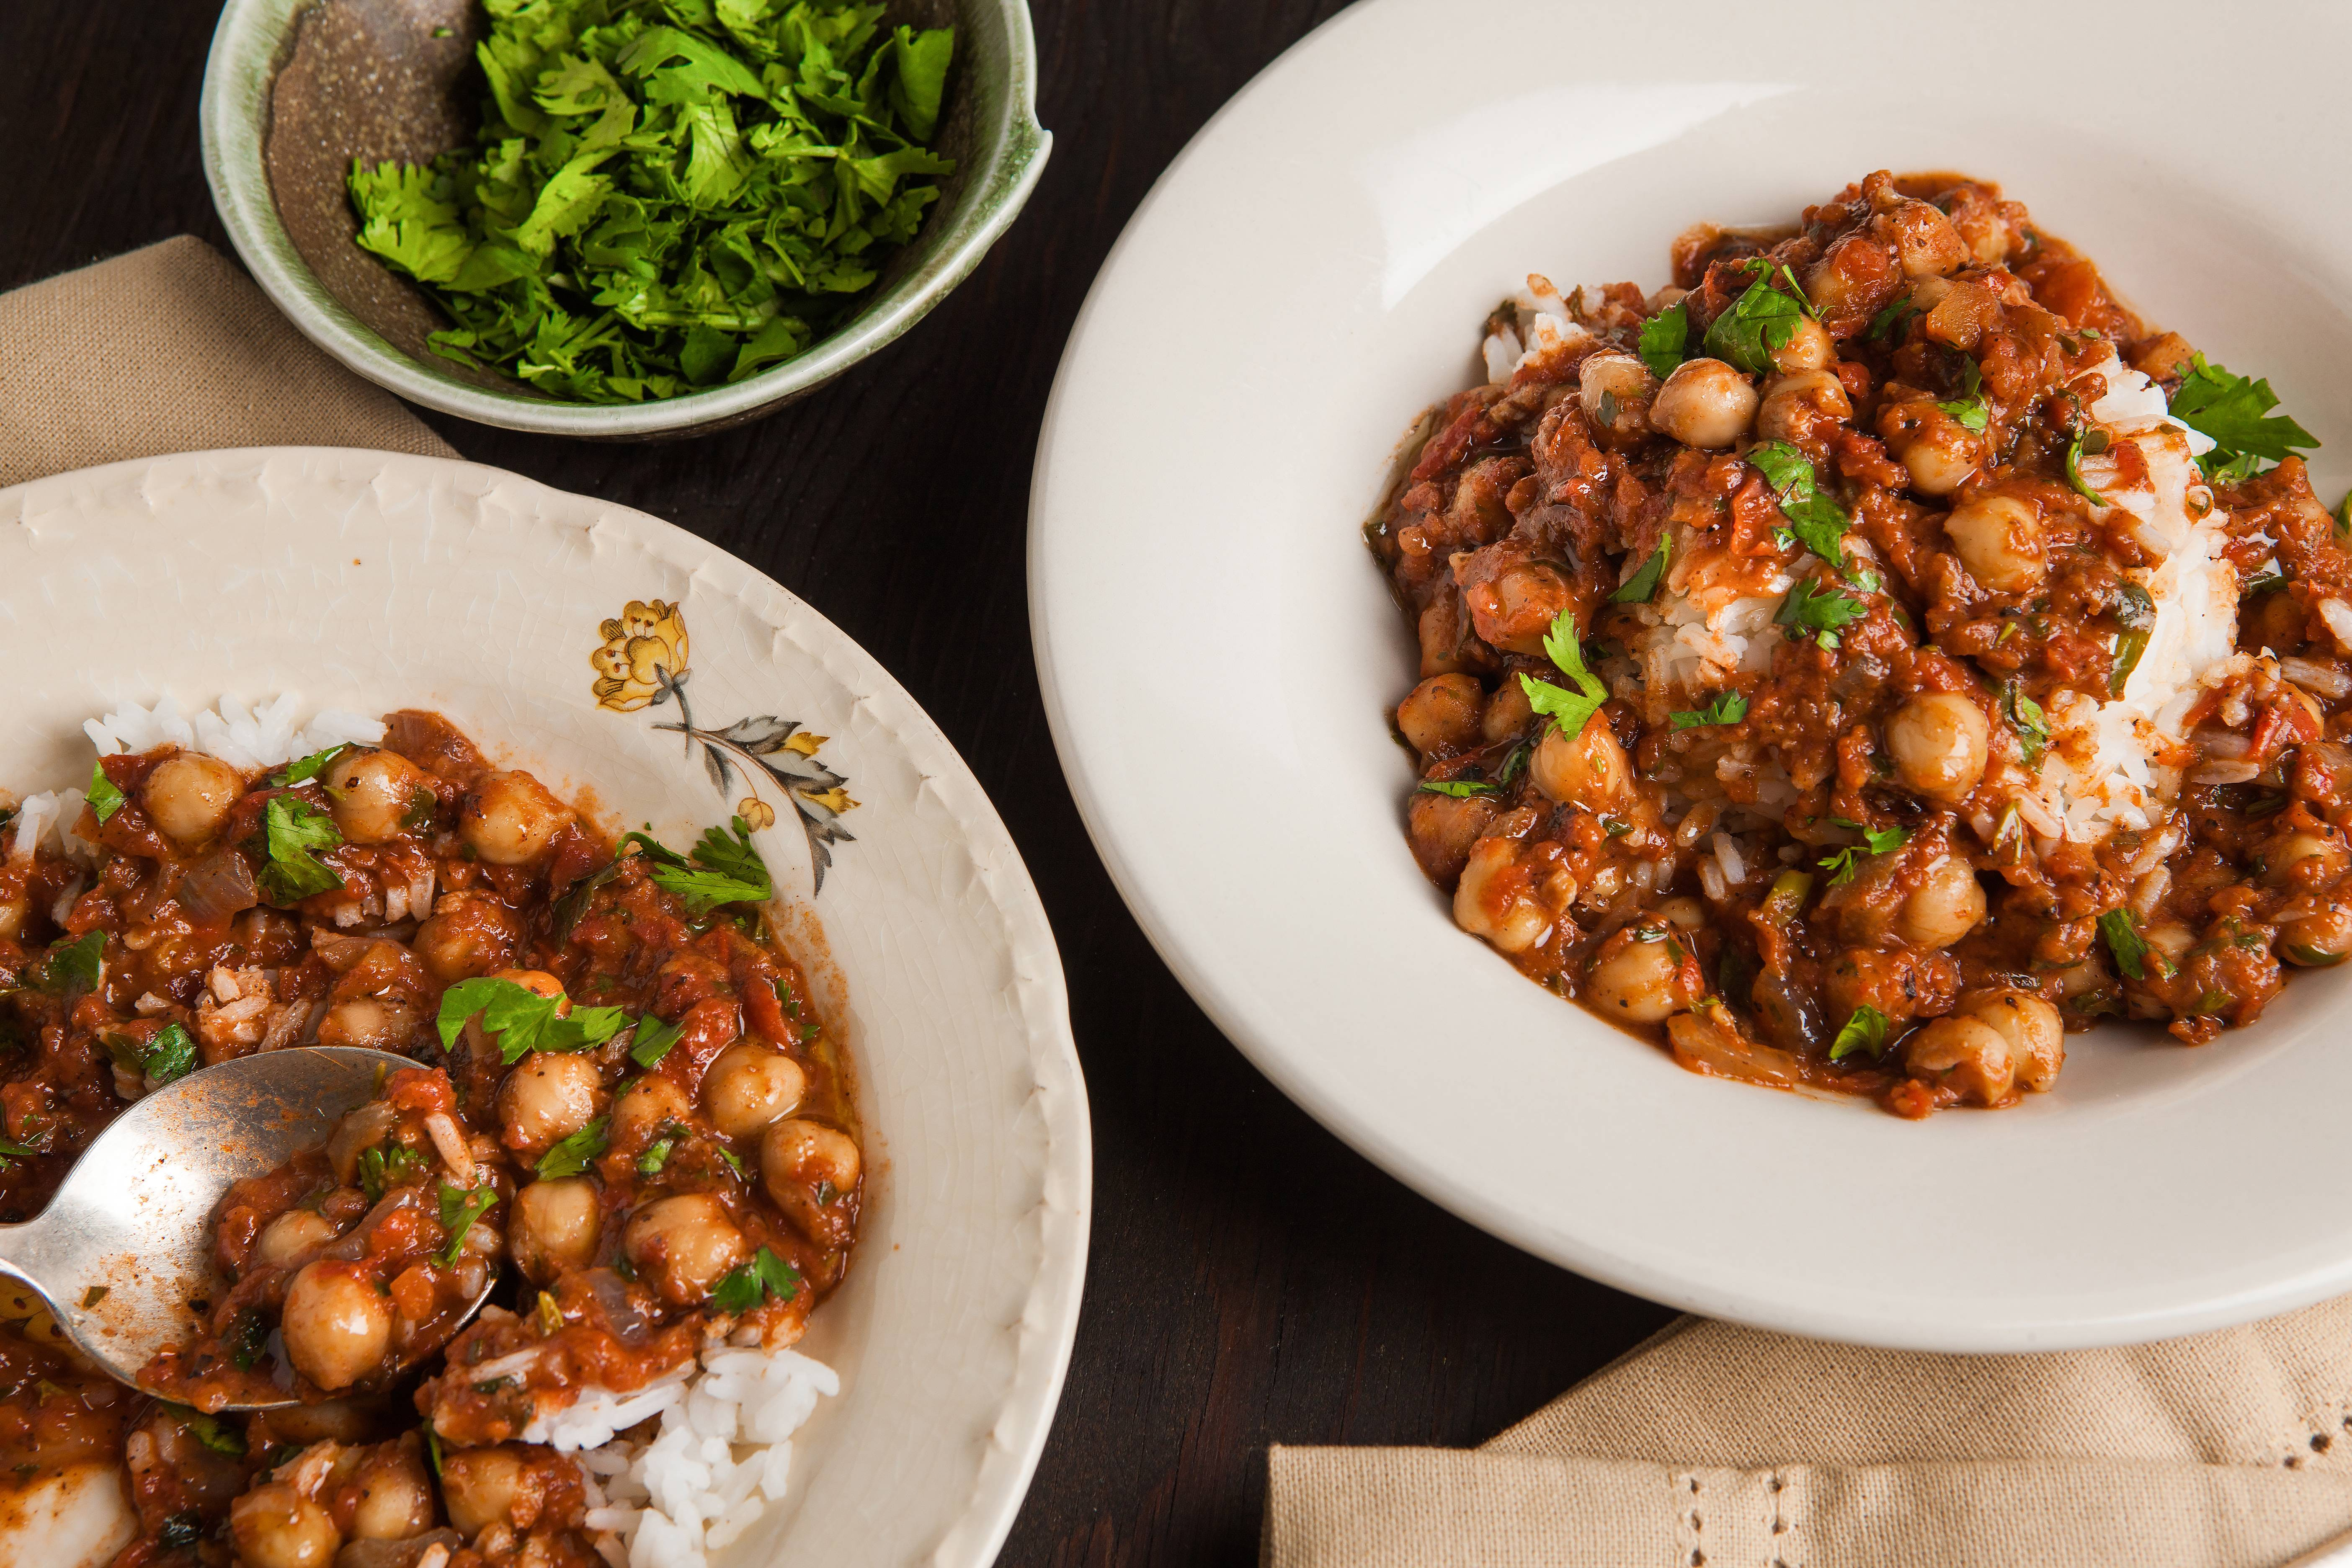 Chickpea tikka masala: It's not traditional, but it sure tastes great